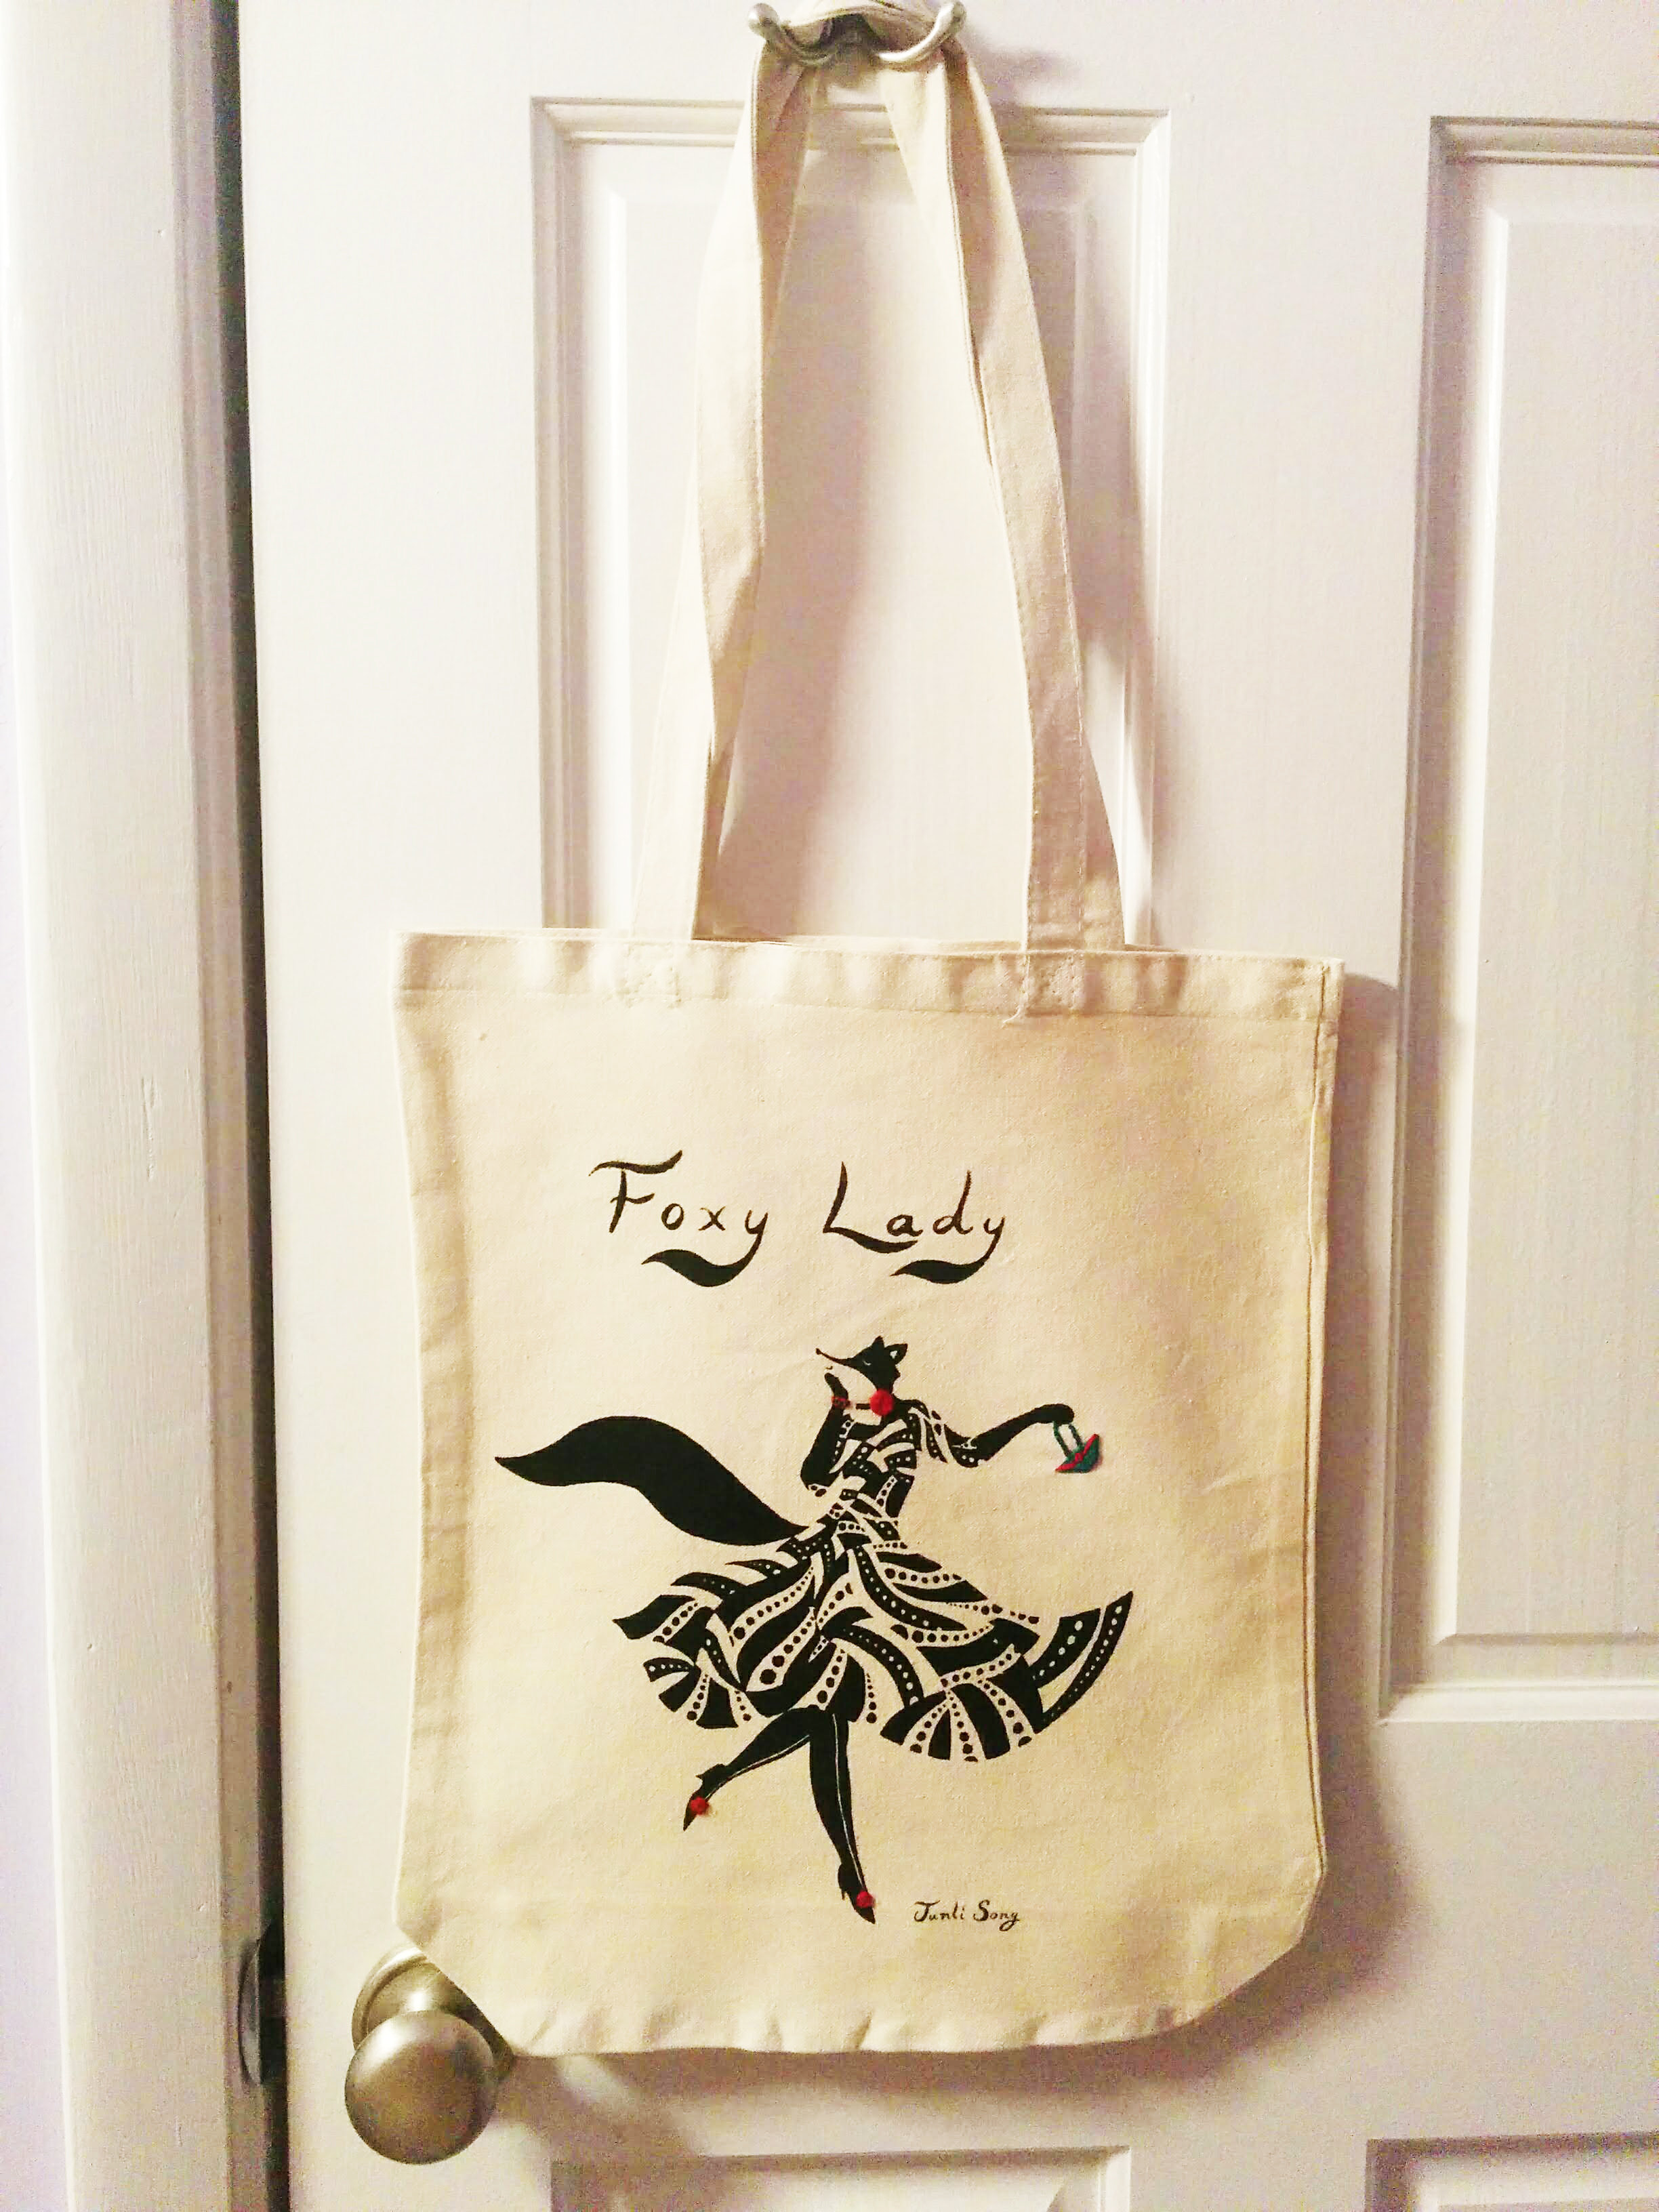 Fox Shopping Bag Bag for Groceries Adorable and Affordable Custom Tote by Woodland Crew Threads Foxy Lady Tote bag Best Picnics school